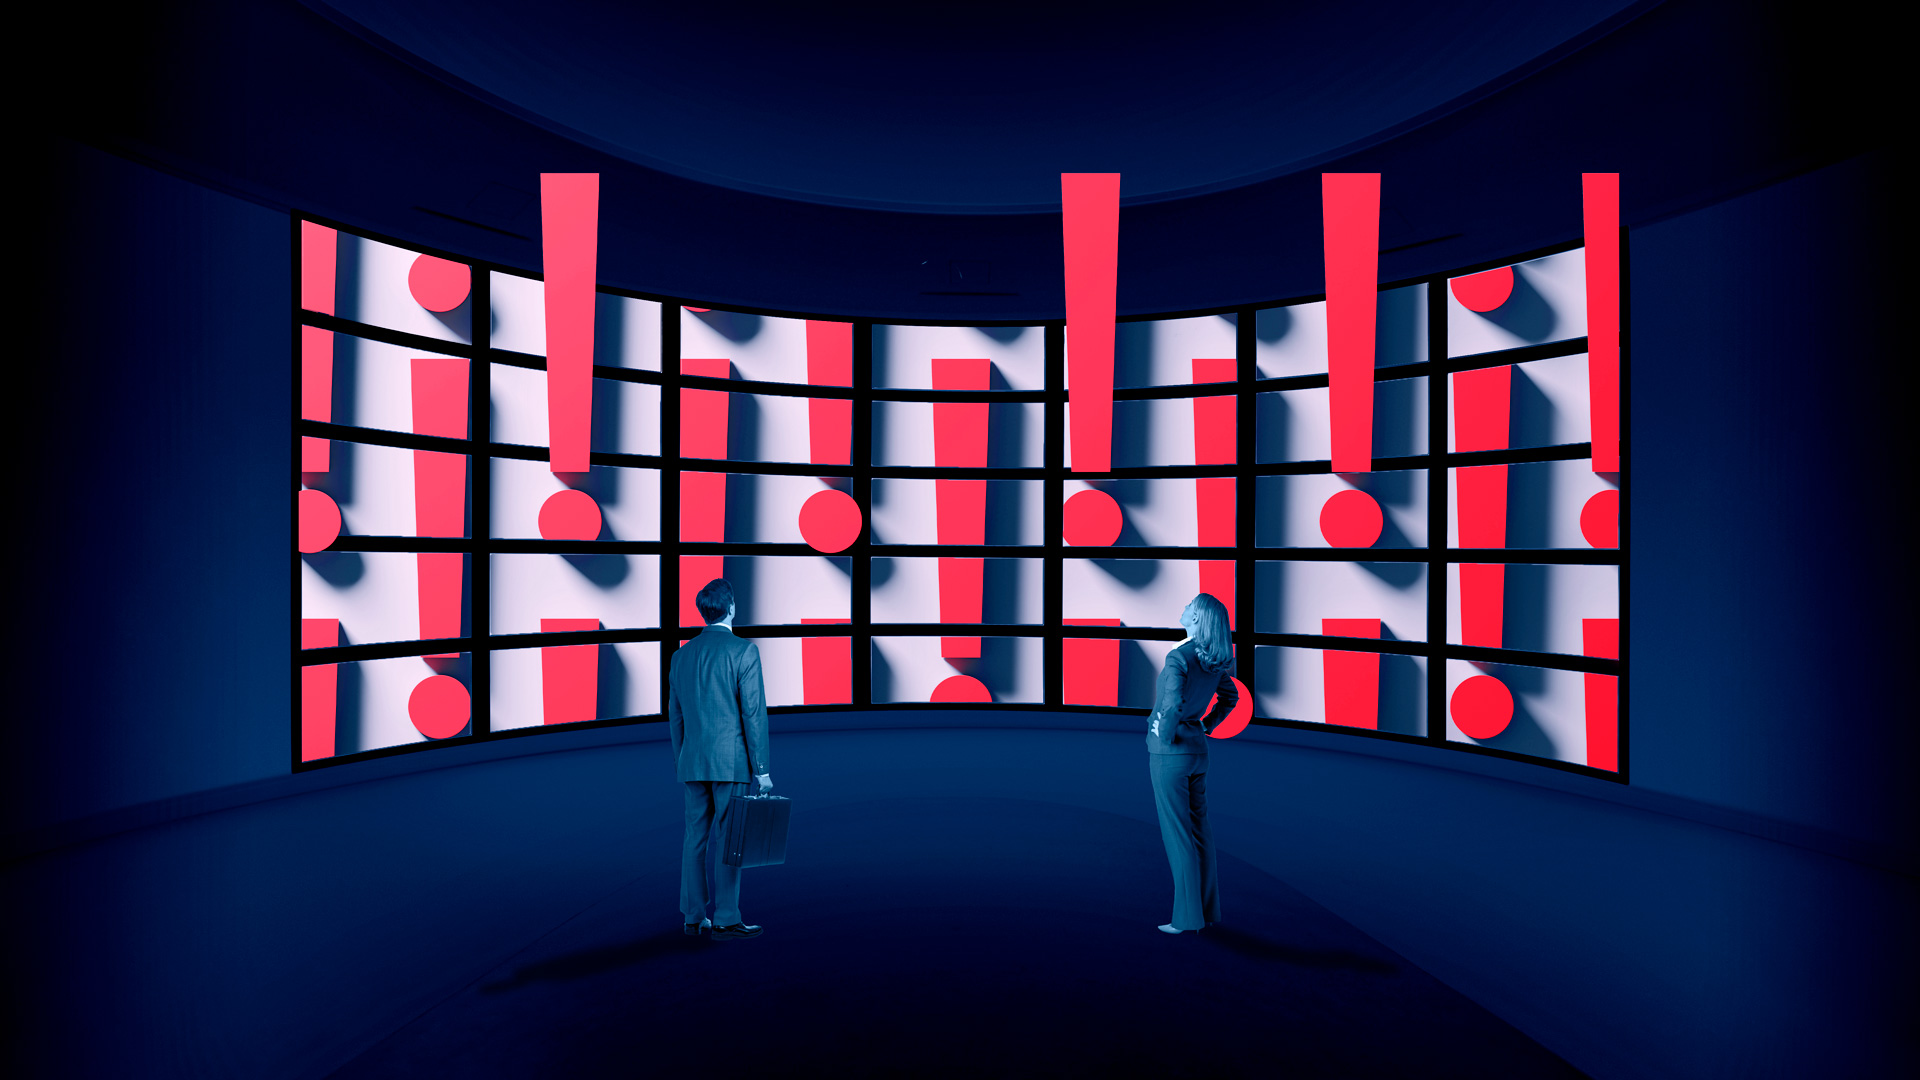 man and woman looking at a giant screen full of exclamation marks